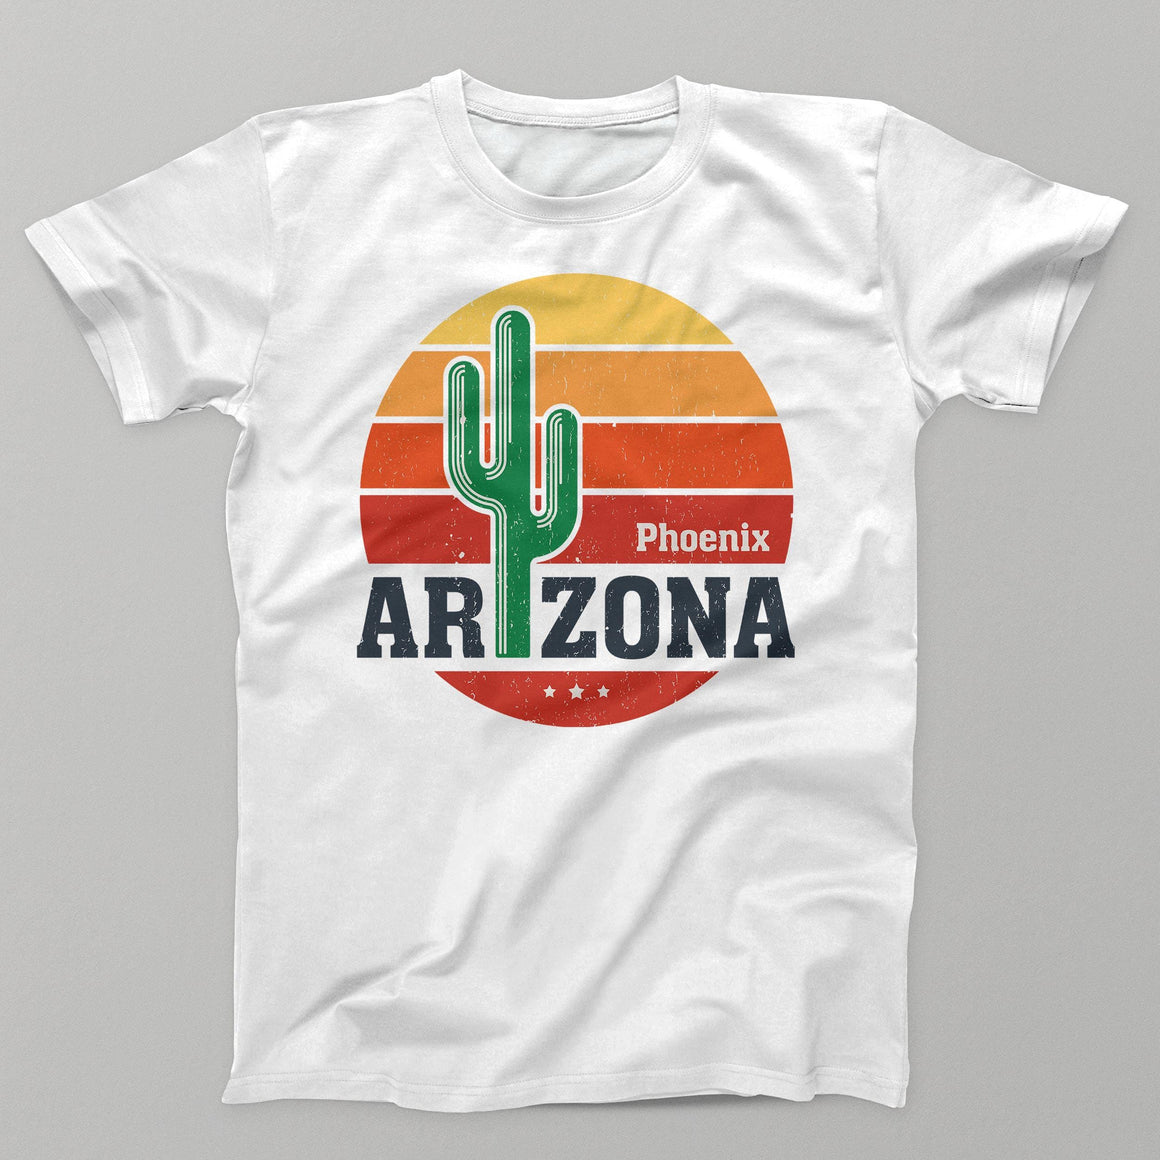 Arizona Men's/Unisex T-Shirt by DIRT & GLORY